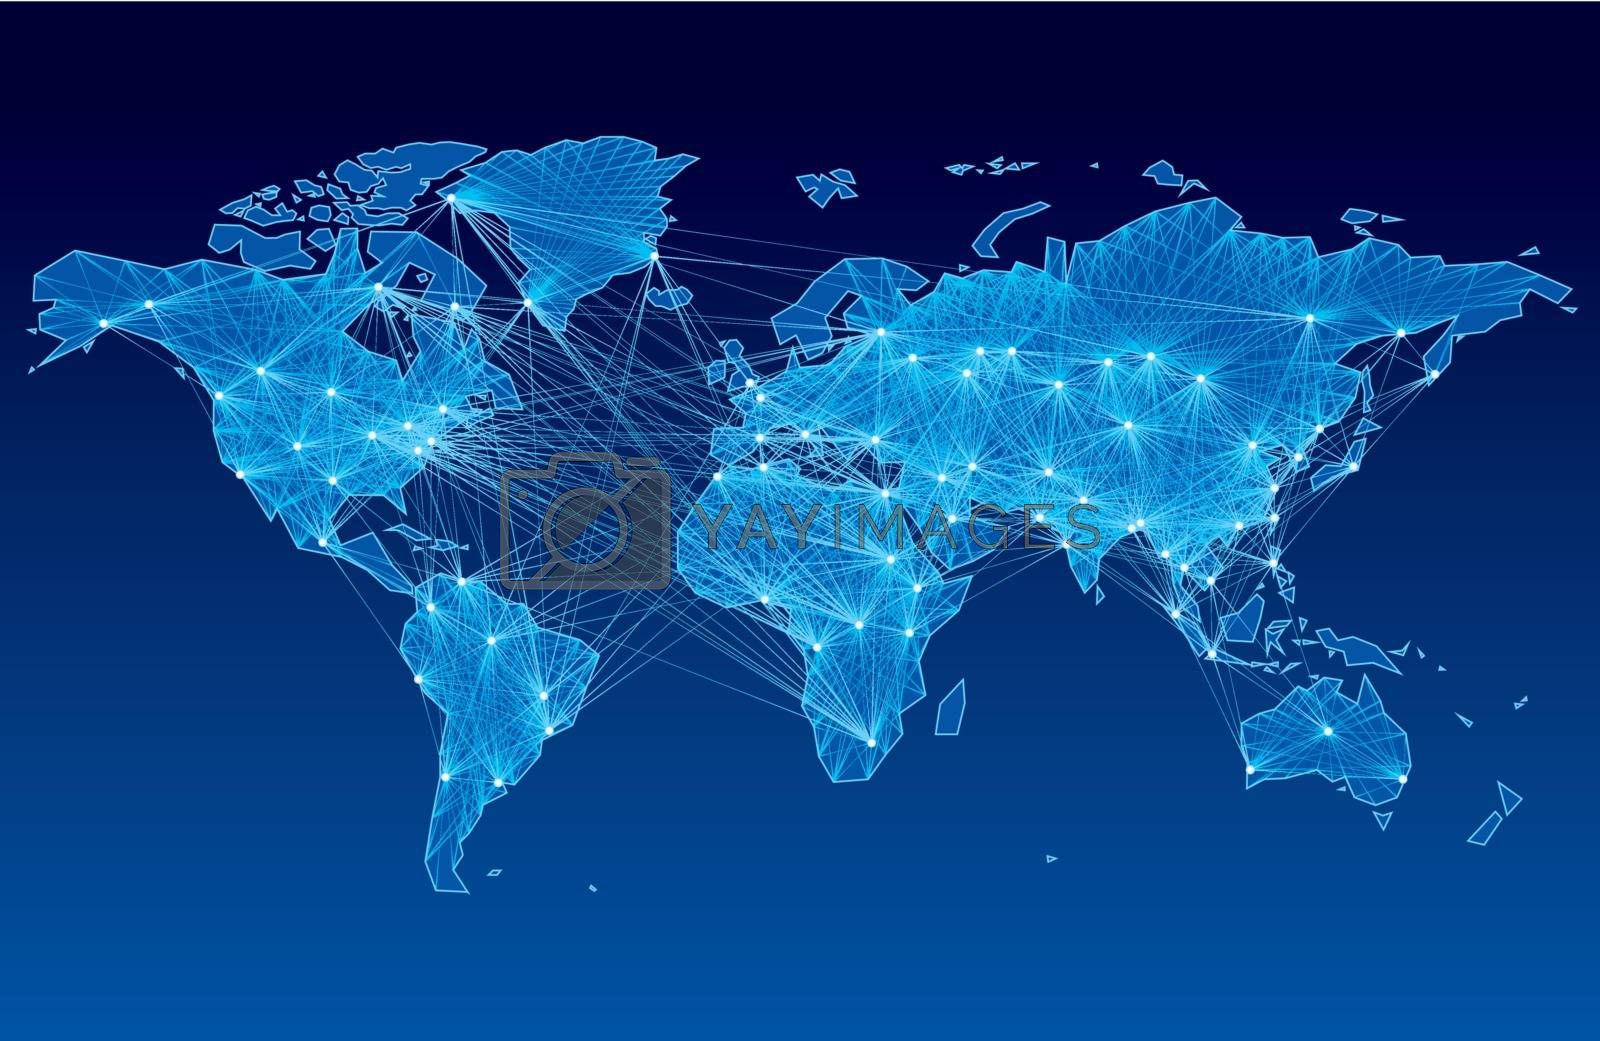 World map with nodes linked by lines. Eps8. CMYK. Organized by layers. Global colors. Gradients used.